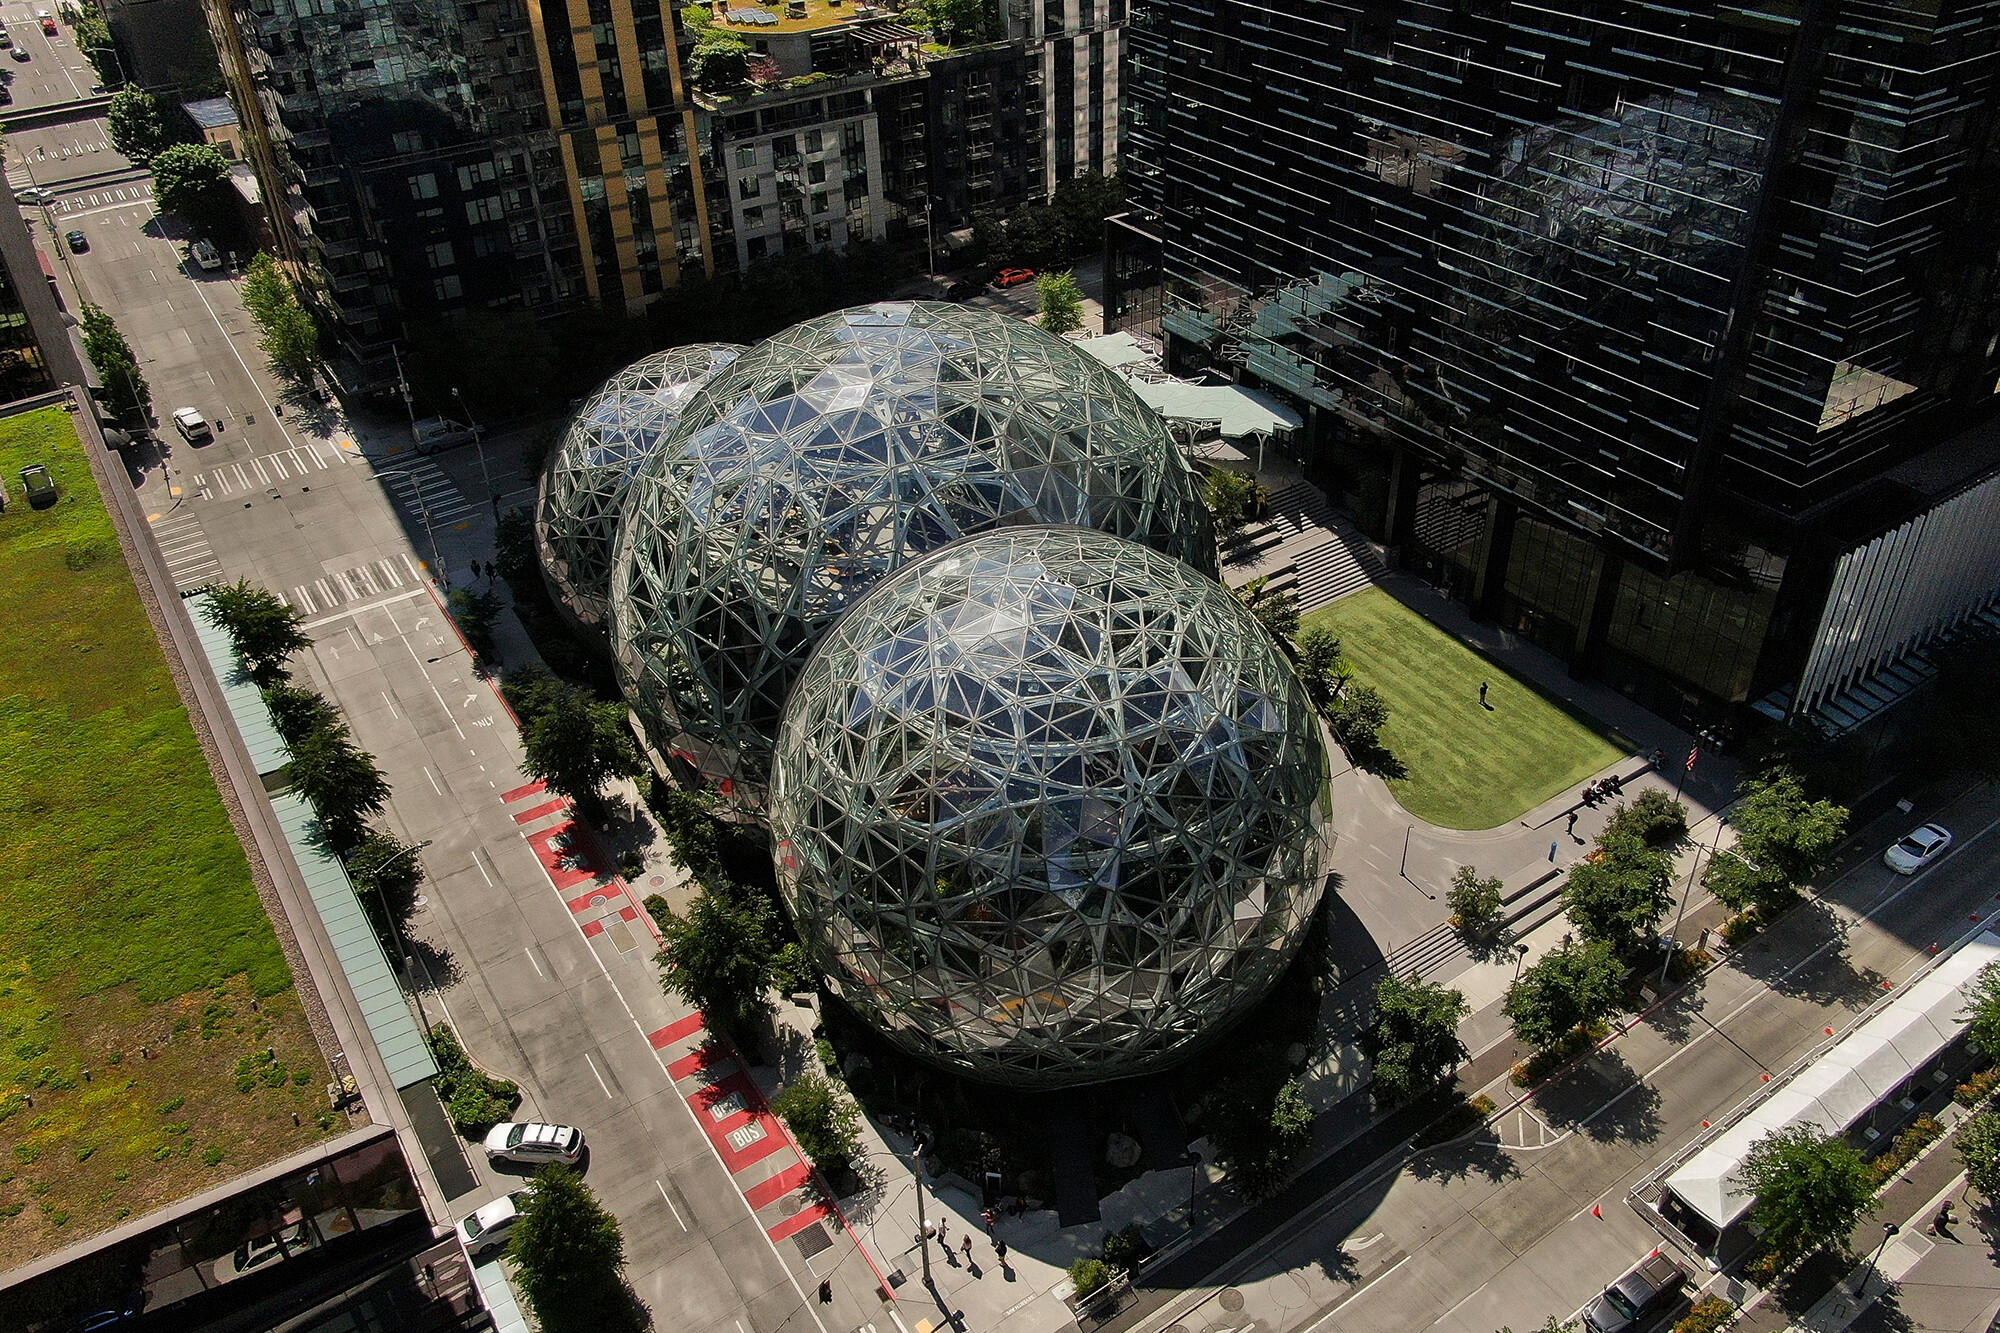 <i>David Ryder/Getty Images</i><br/>Amazon has hired outside investigators to probe the internal culture of part of its cloud computing operations after employees circulated a petition alleging